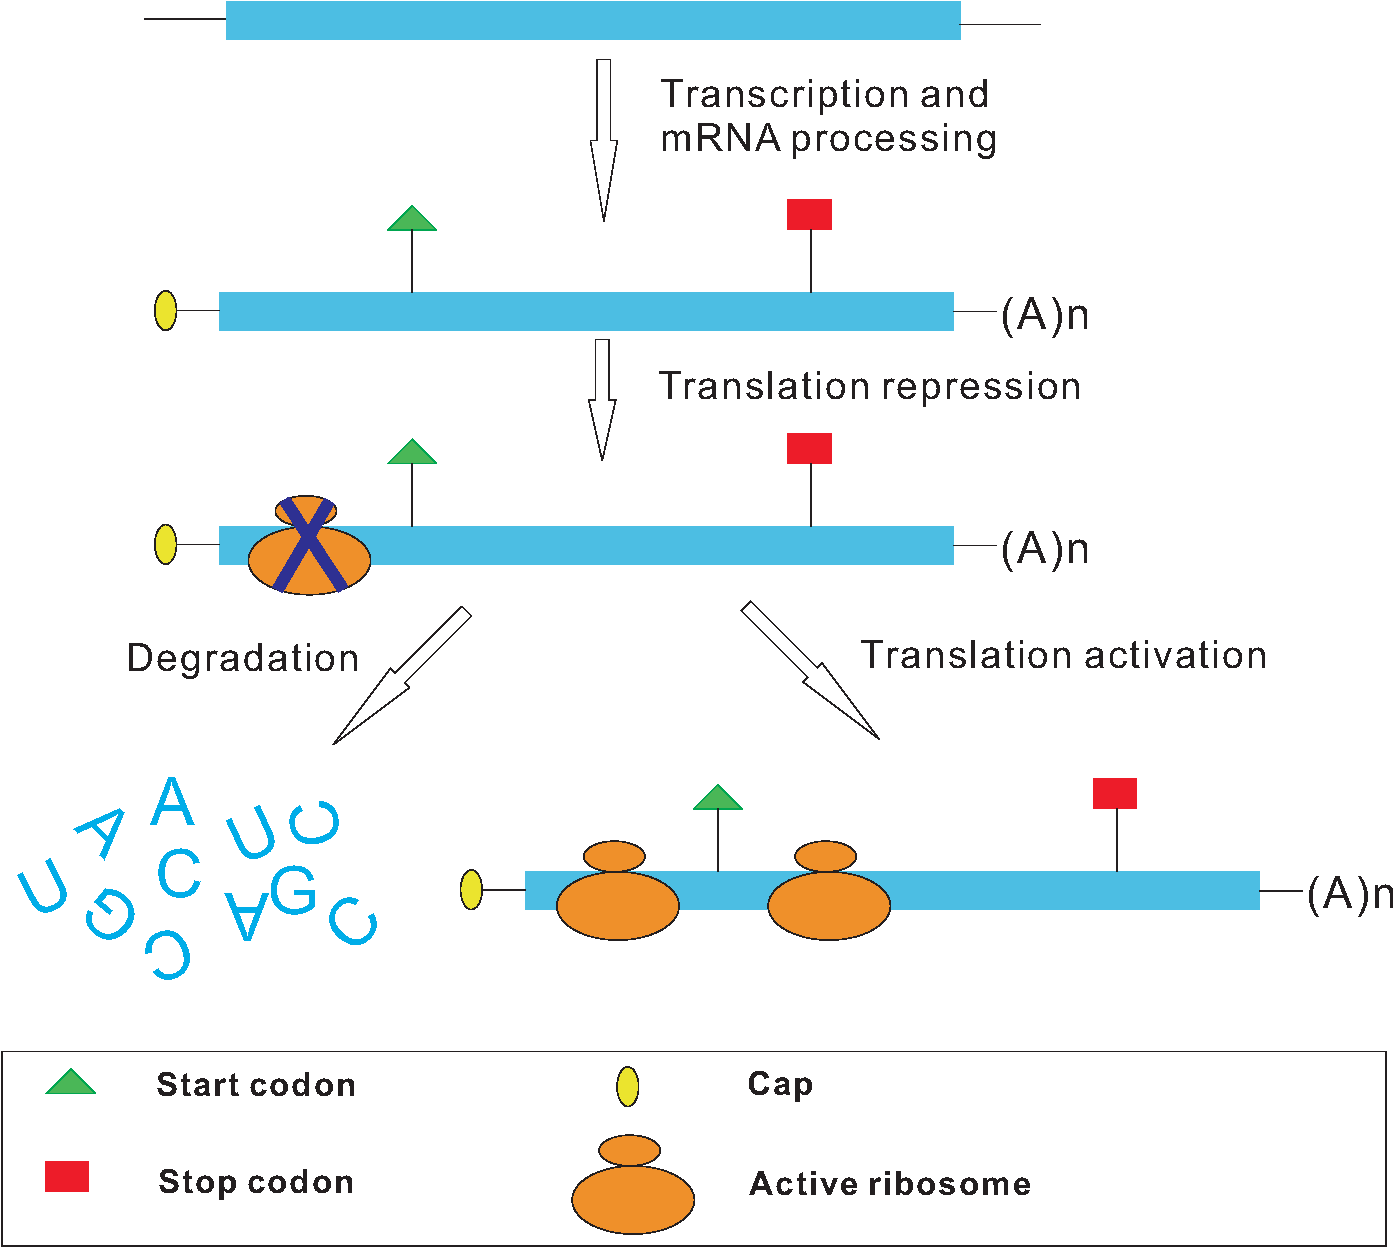 translational repression of NMD targets